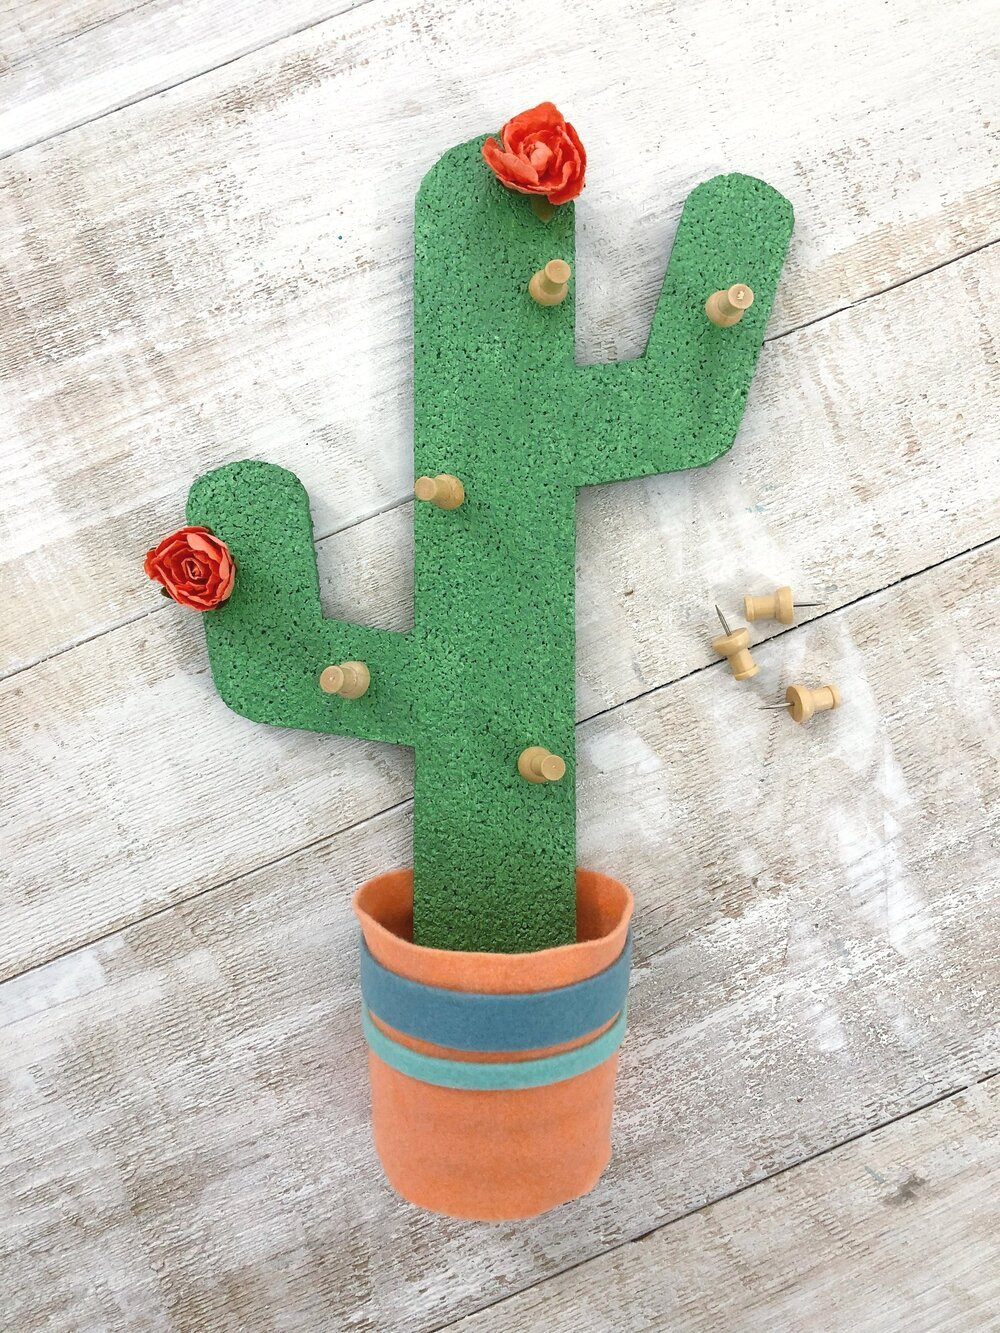 Create an easy Magnetic Cactus Corkboard to keep your fridge looking cute with all your papers organized! #kitchen #cactus #corkboard #easydiy #dormroomdecor #magnet #feltcraft #wallorganizer #pushpins #easycrafts #craftstodowhenbored #homedecor #kitchenmakeover #summervibes #pinboard #penholder #upcycle